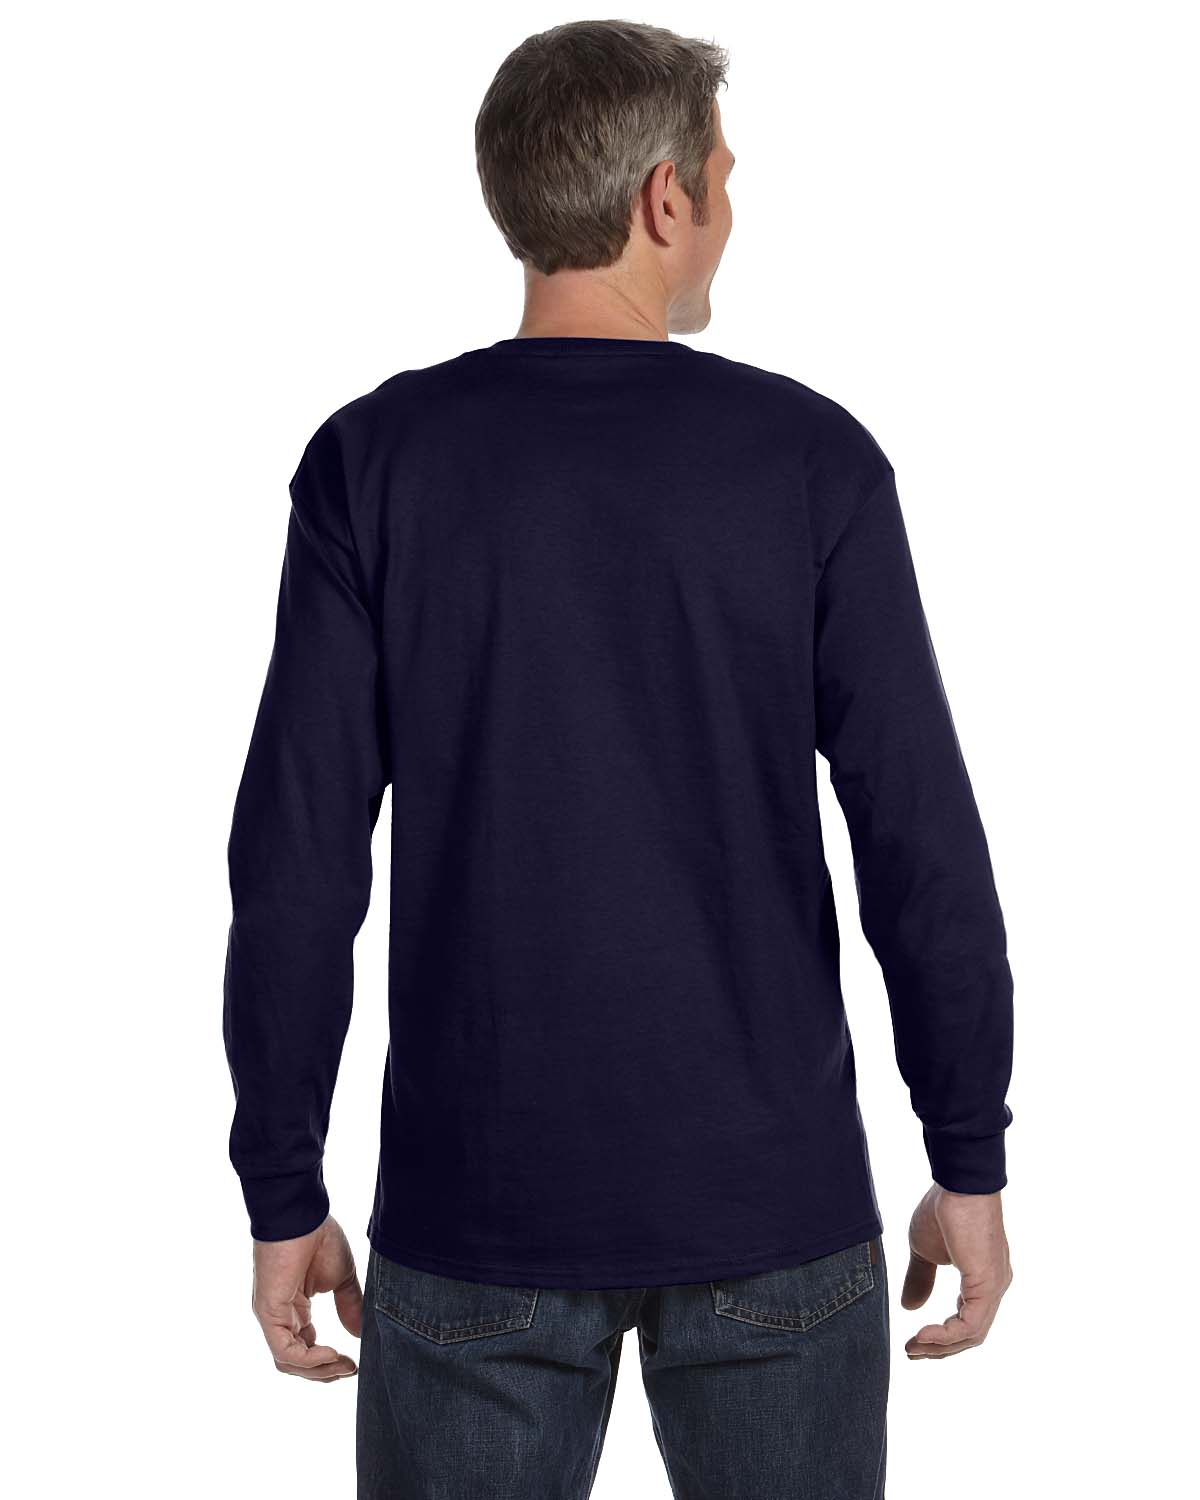 Gildan-Mens-T-Shirt-Long-Sleeve-Heavy-Cotton-5-3-oz-S-XL-R-G540-5400 thumbnail 35